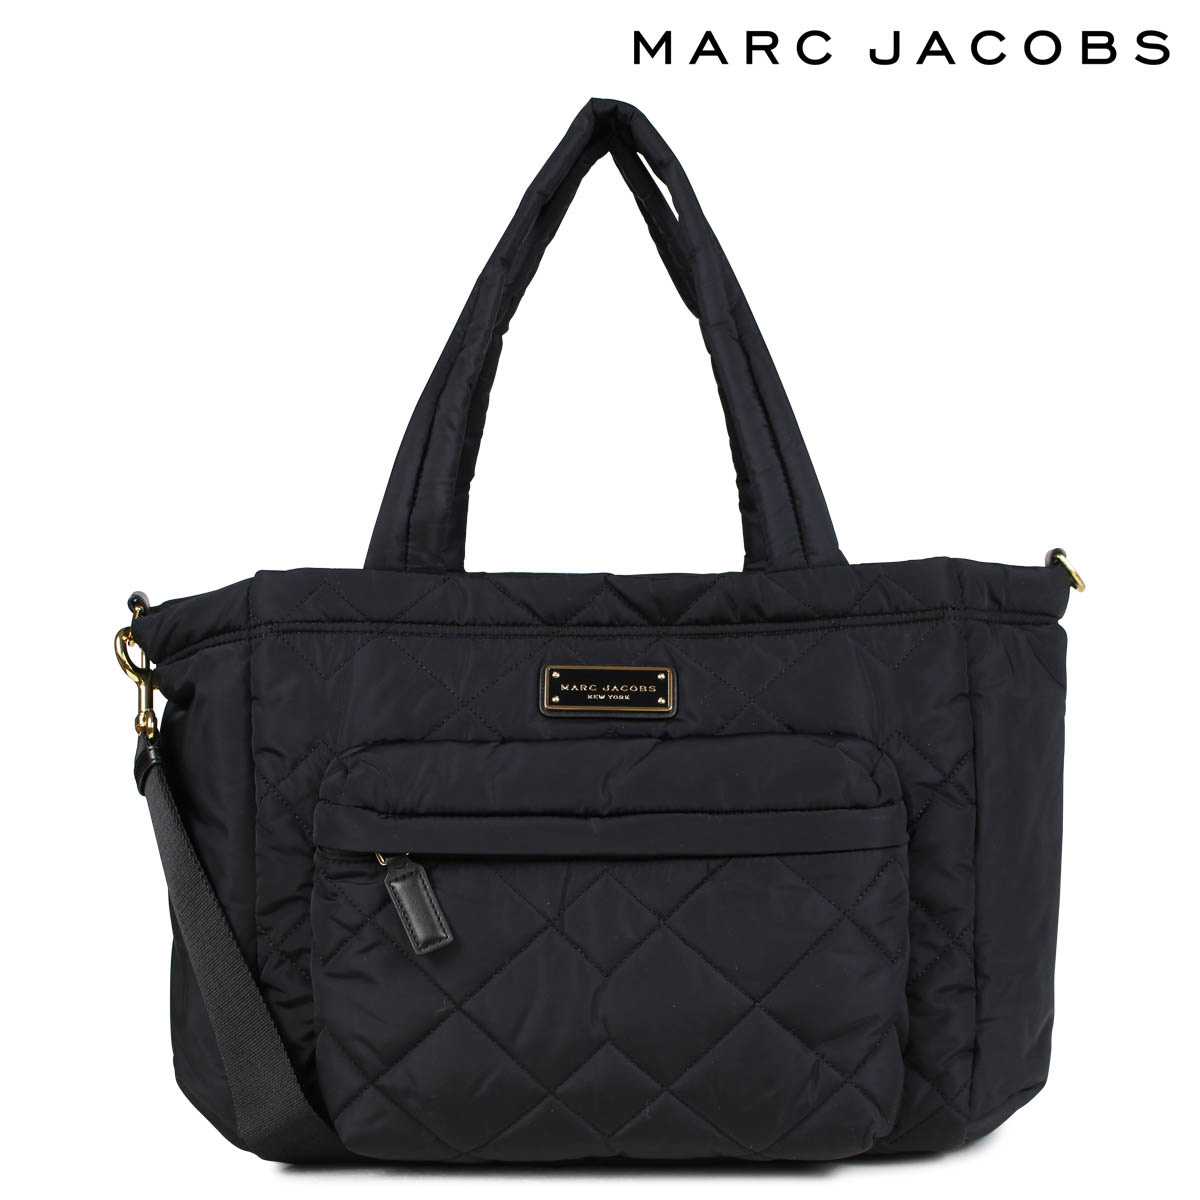 MARC JACOBS マークジェイコブス バッグ トートバッグ マザーズバッグ レディース QUILTED NYLON TOTE ブラック M0011380